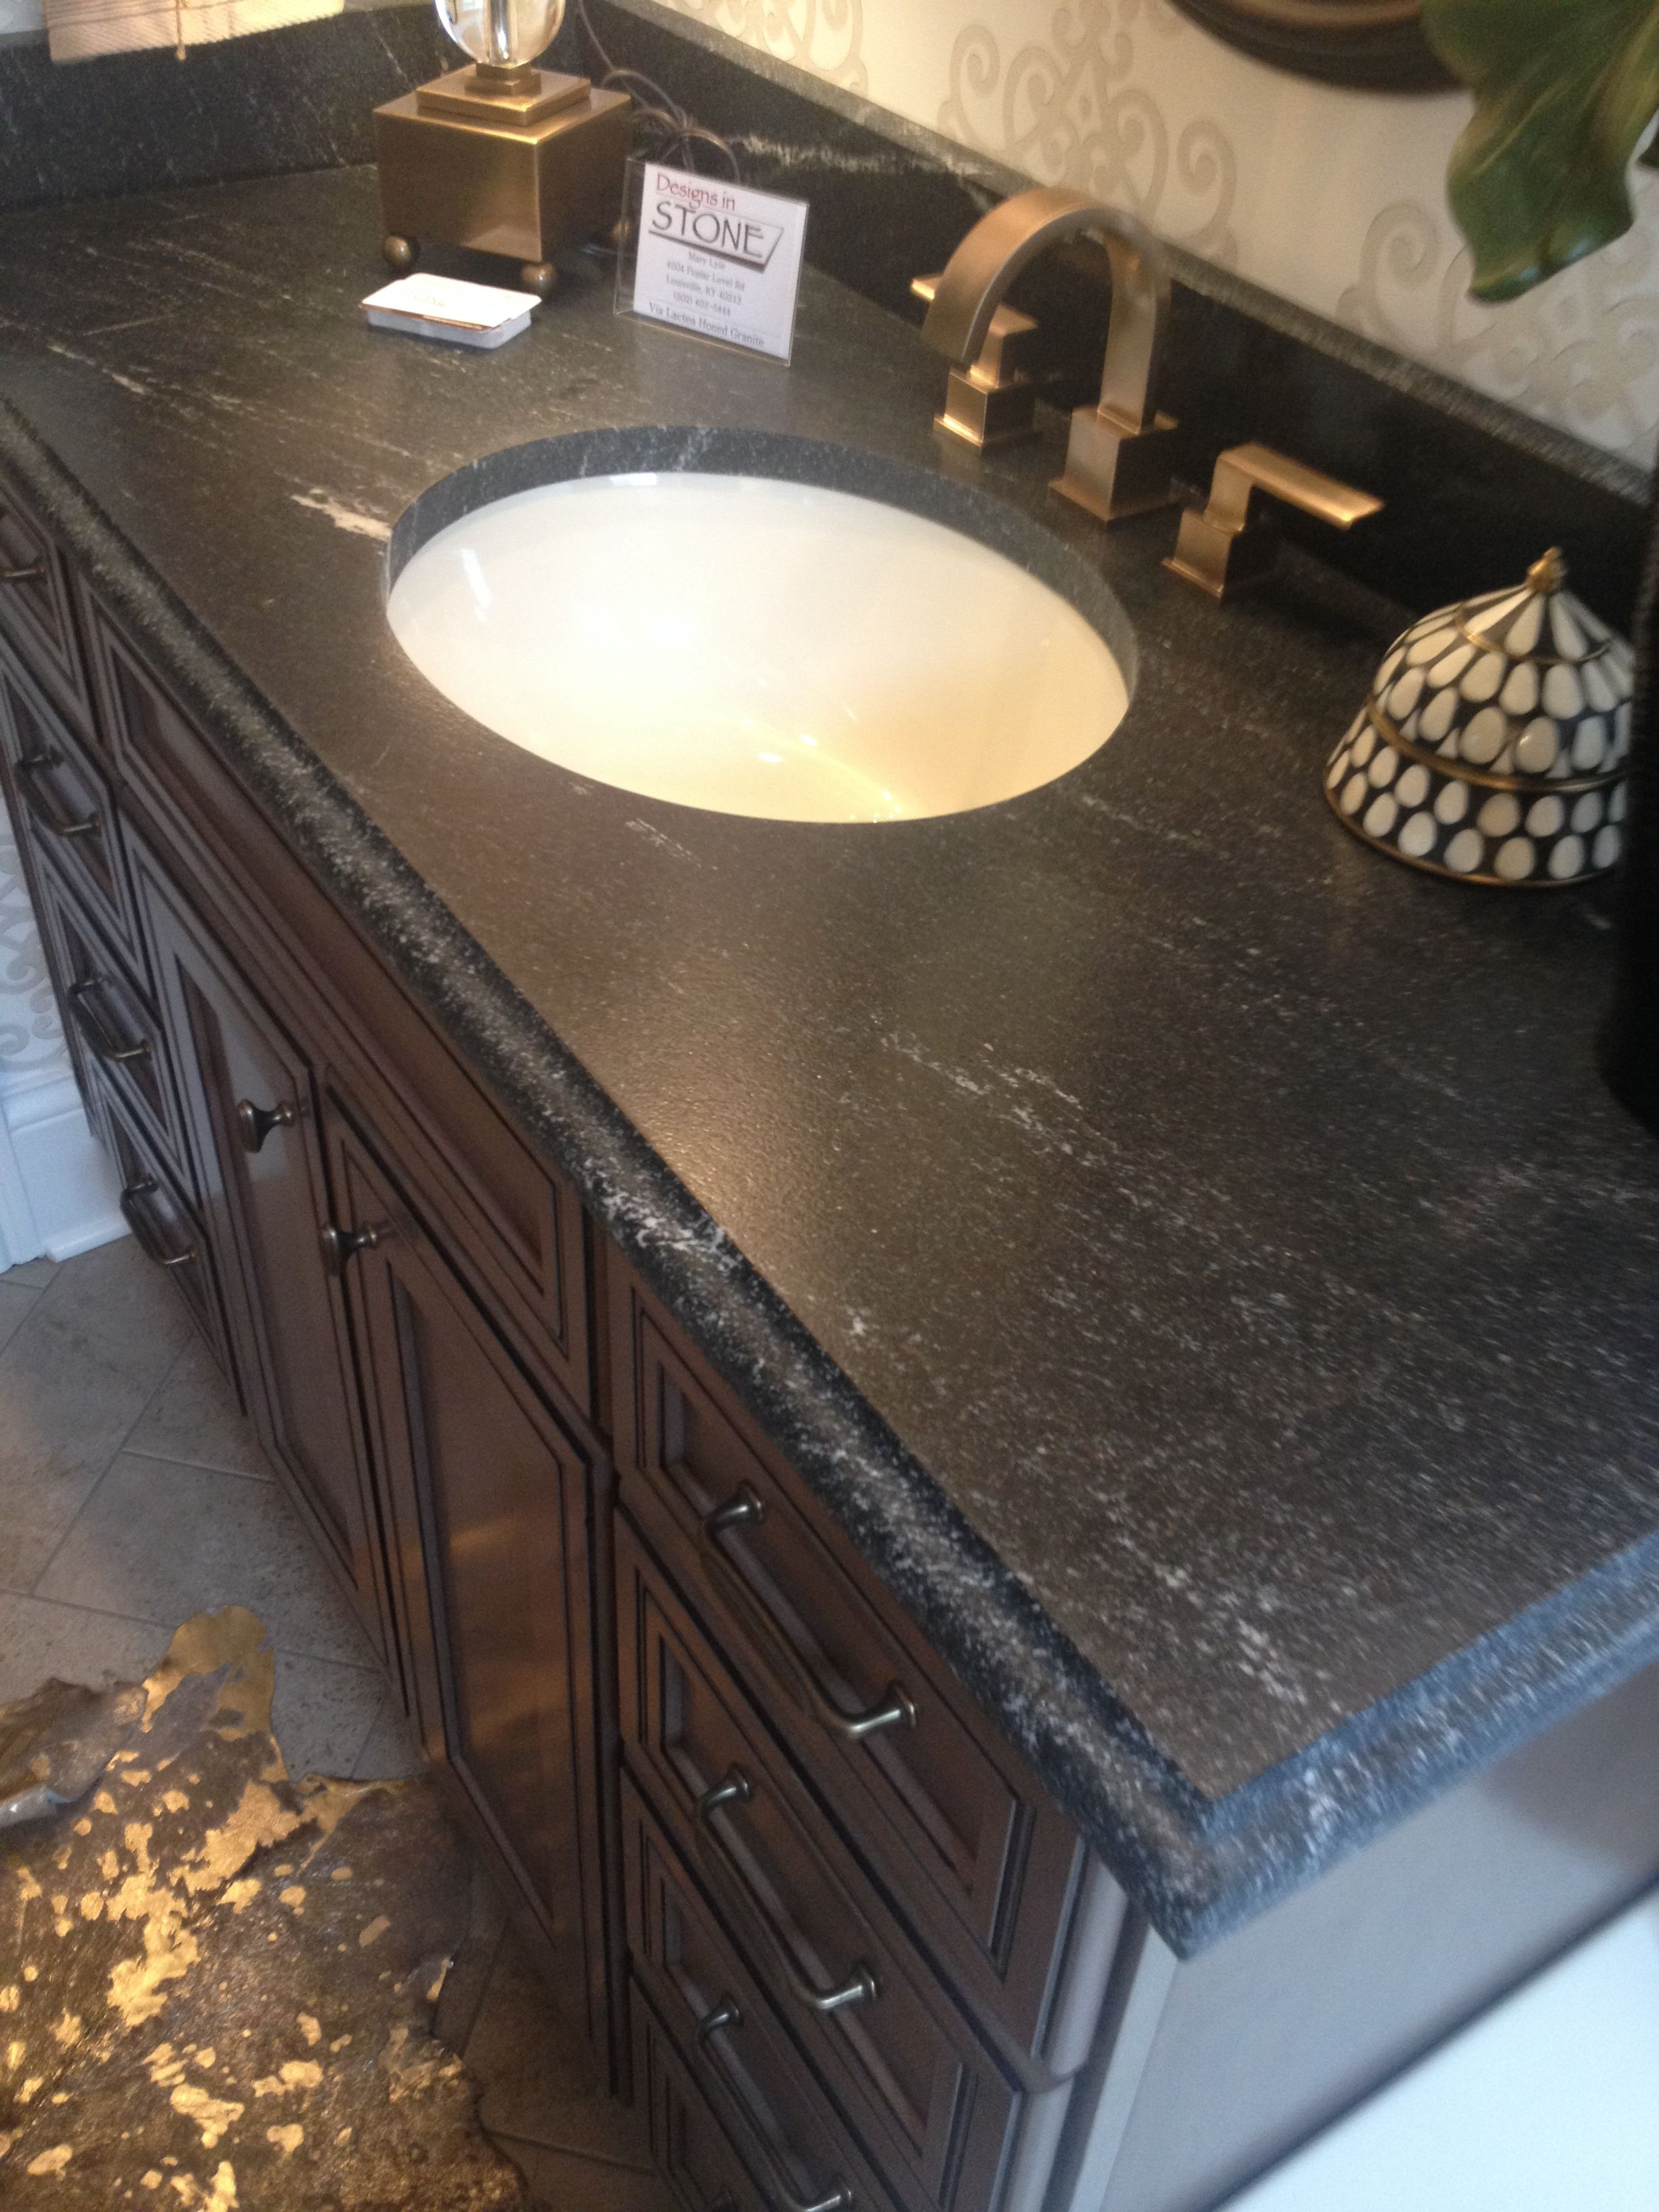 Via Lactea Suede Vanity Top Suede Is The Surface Finish